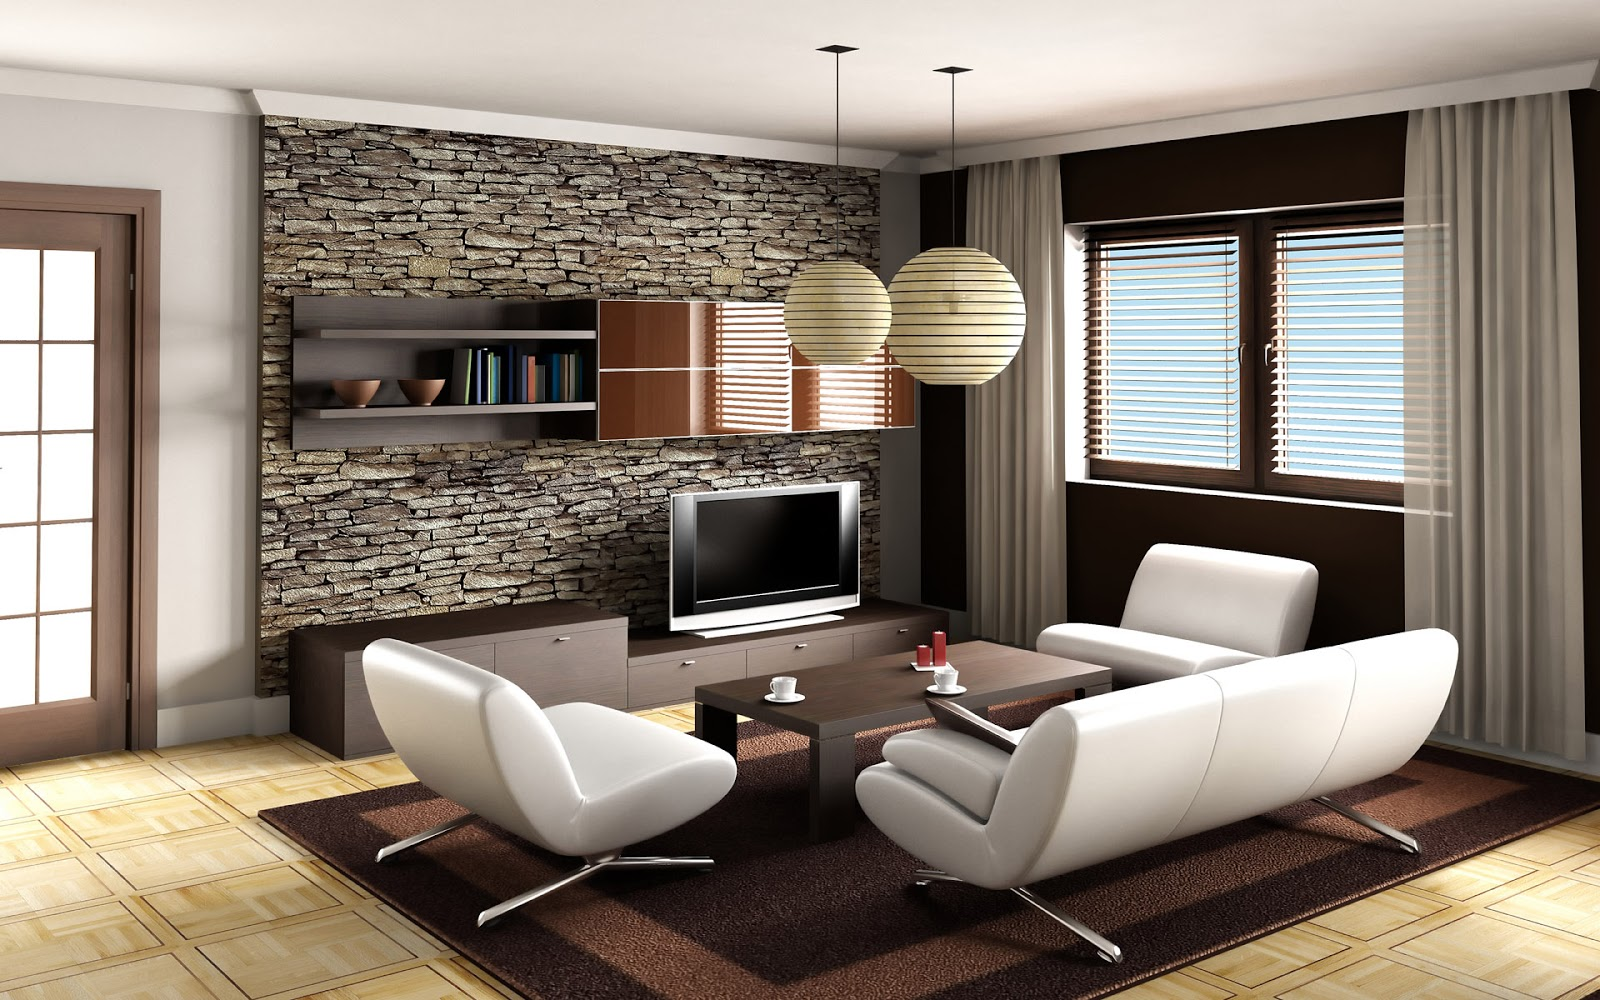 Arrangement of luxury living room ideas dream house for Design ideas living room